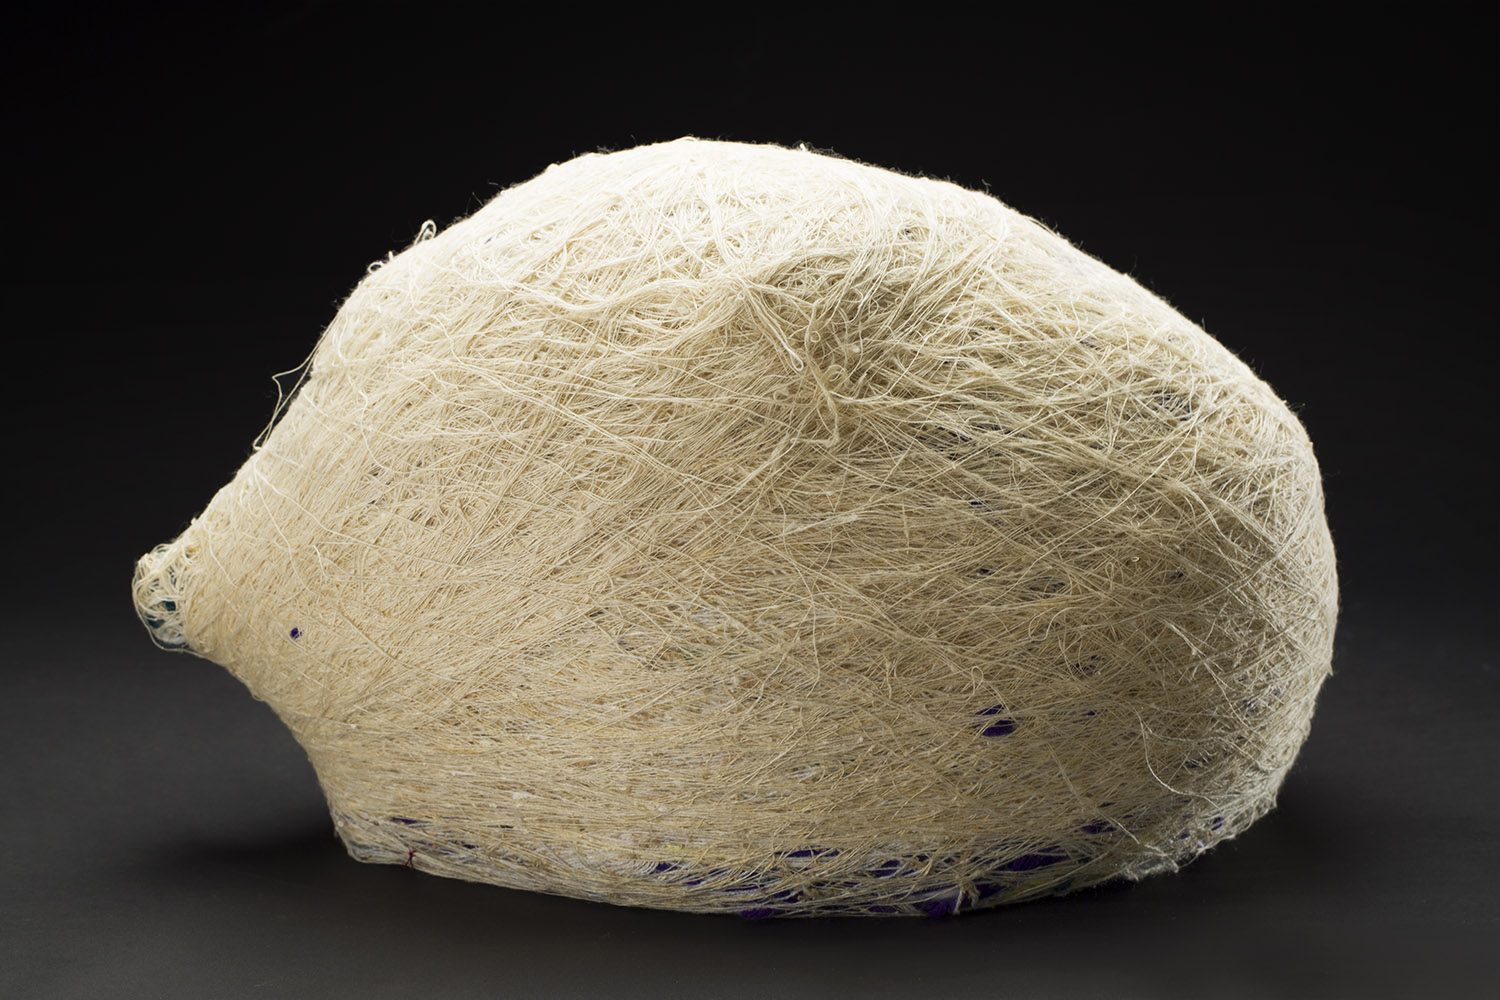 Tony Pedemonte Untitled, 2014 Fiber and wood 20 x 16 x 12 inches 50.8 x 40.6 x 30.5 cm TPed 12